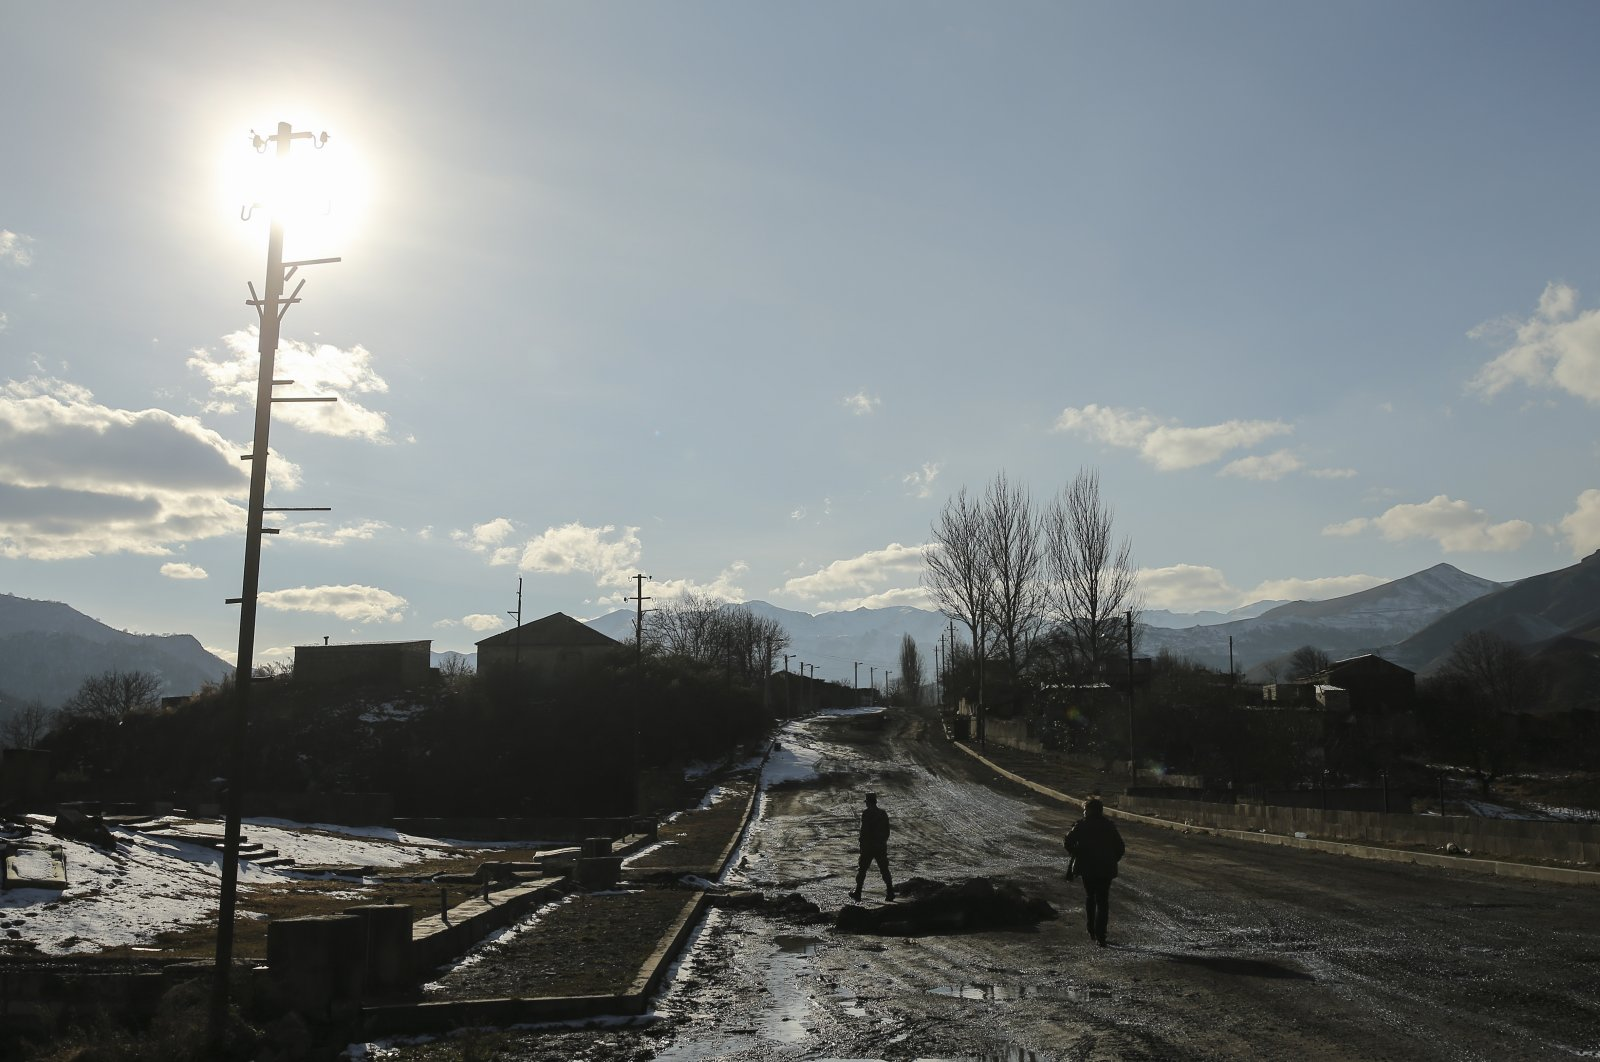 Azerbaijani soldiers walk on an empty road after the transfer of the Kalbajar region to Azerbaijan's control, as part of a peace deal that required Armenian forces to cede the Azerbaijani territories they held outside Nagorno-Karabakh, Kalbajar, Azerbaijan, Dec. 2, 2020. (AP File Photo/Emrah Gürel)